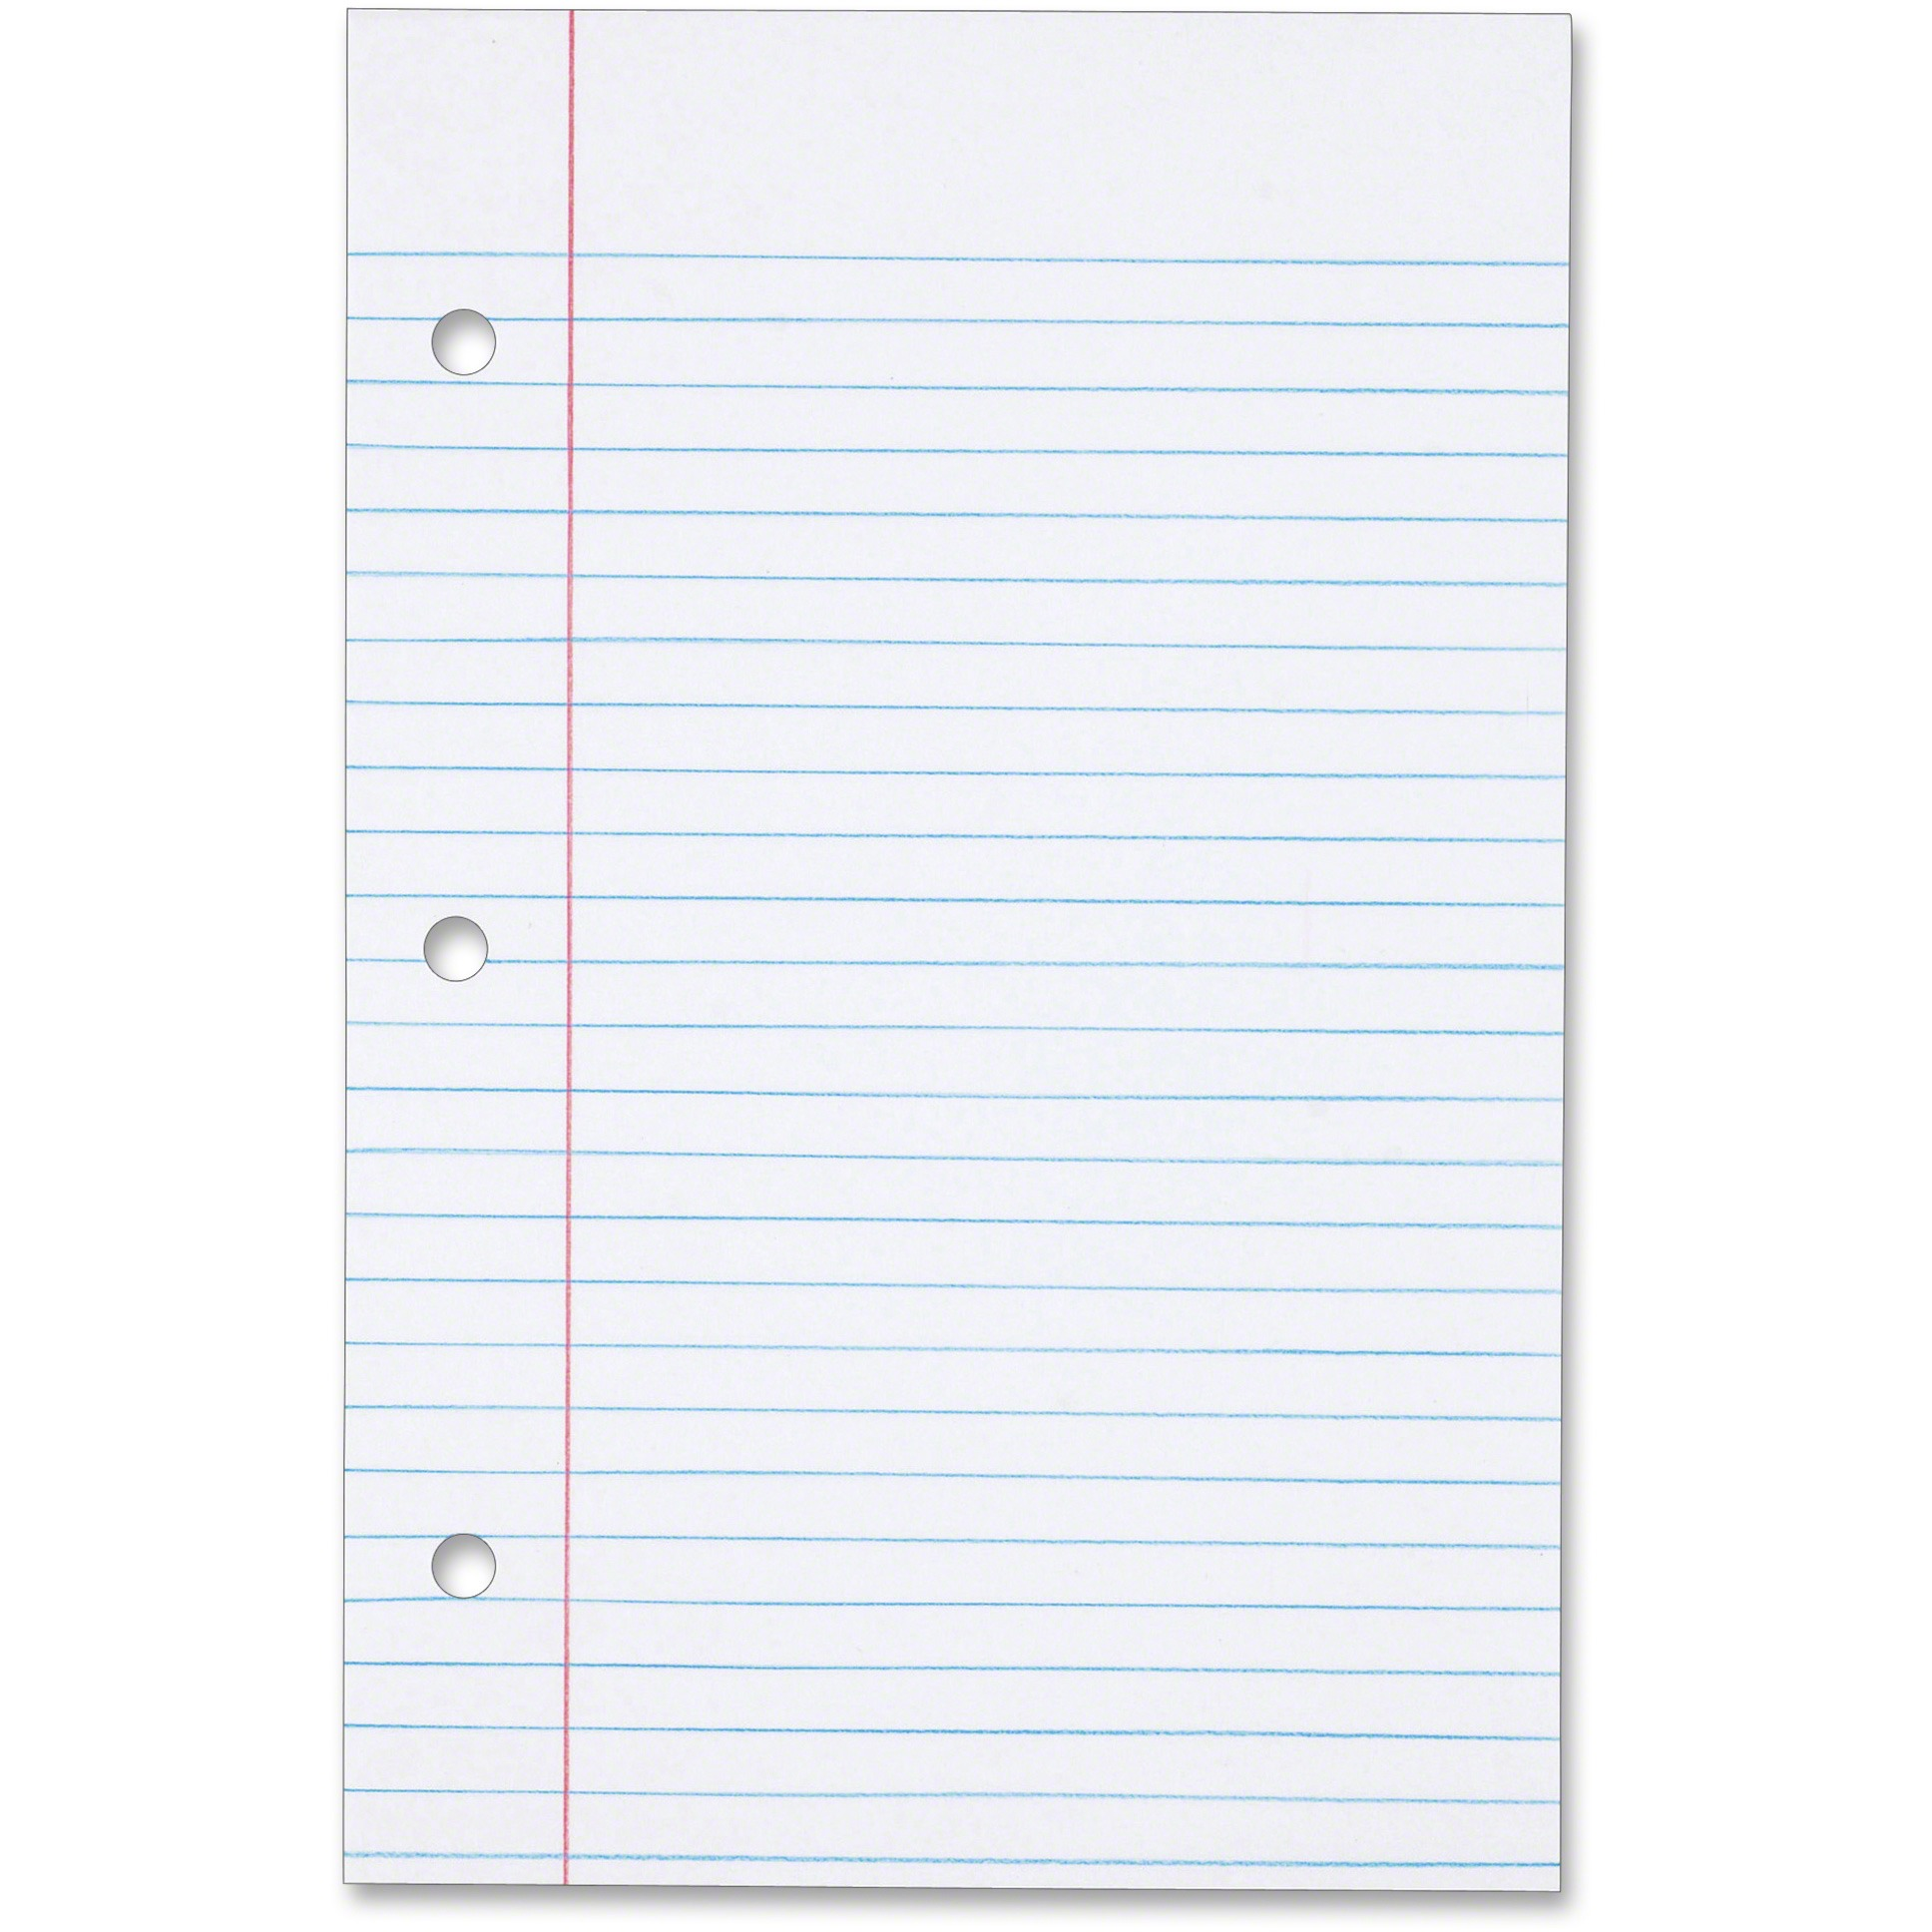 TOPS, TOP62304, 3-hole Punched College-ruled Filler Paper, 100 / Pack